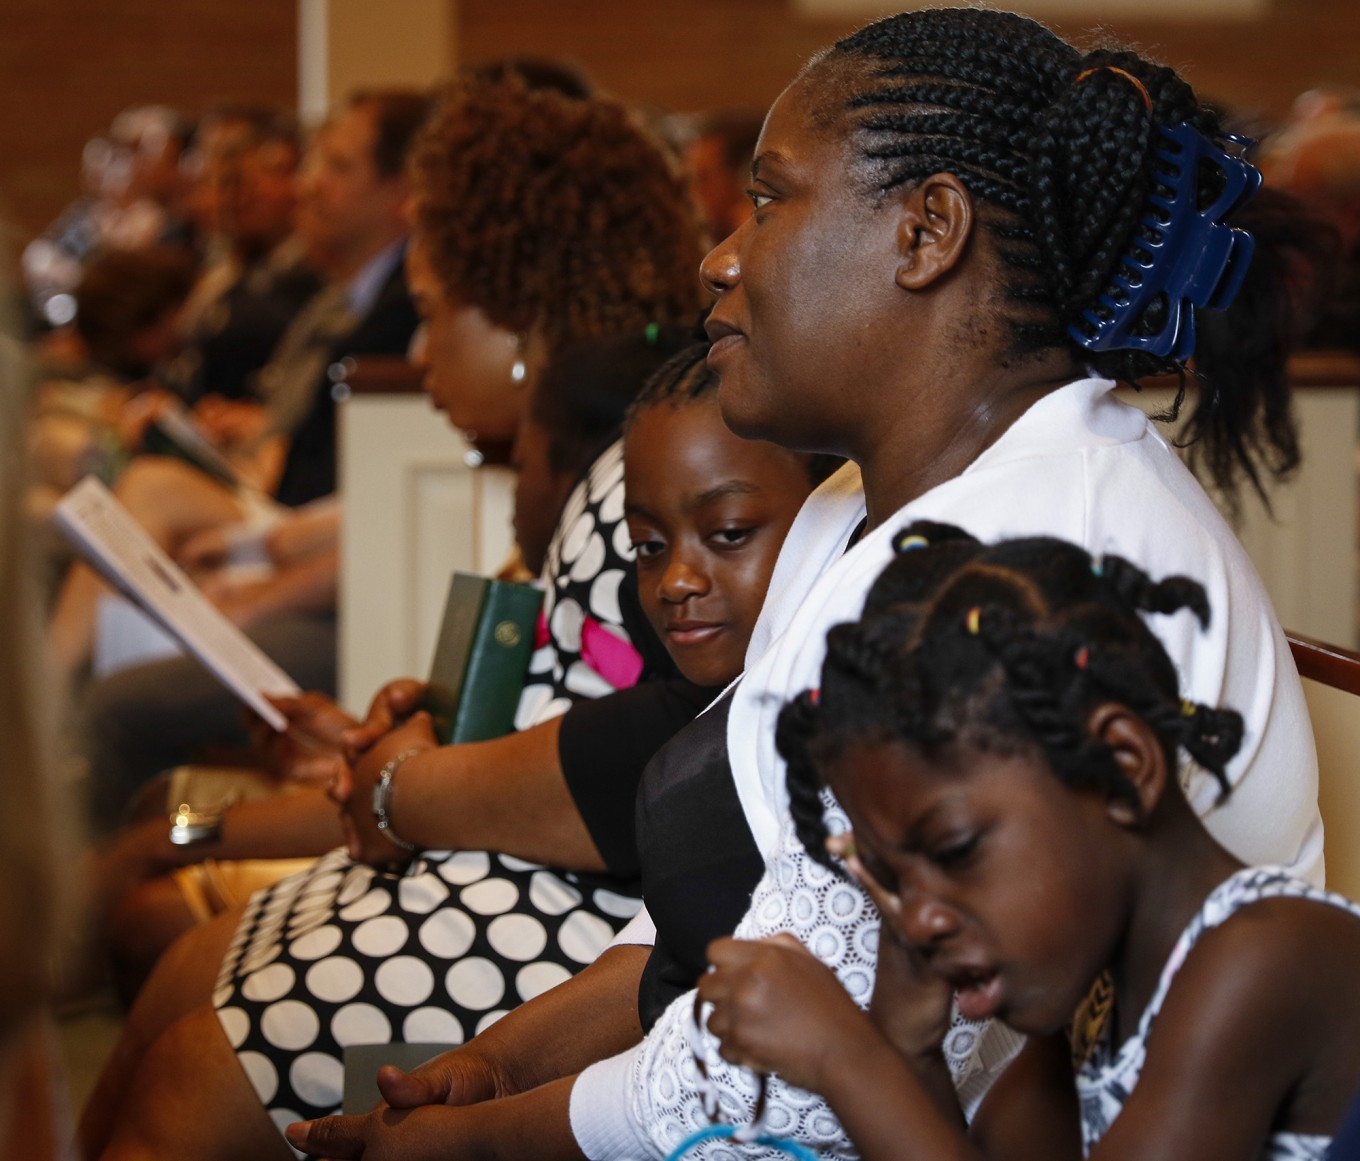 Louise Troh, center, the fiancée of Thomas Eric Duncan, sits with her granddaughters Rose Yah, left, 6, and Knowledge Dopoe, 5, at Wilshire Baptist Church in Dallas on Easter Sunday, April 5, 2015.  (Jim Tuttle/The Dallas Morning News)